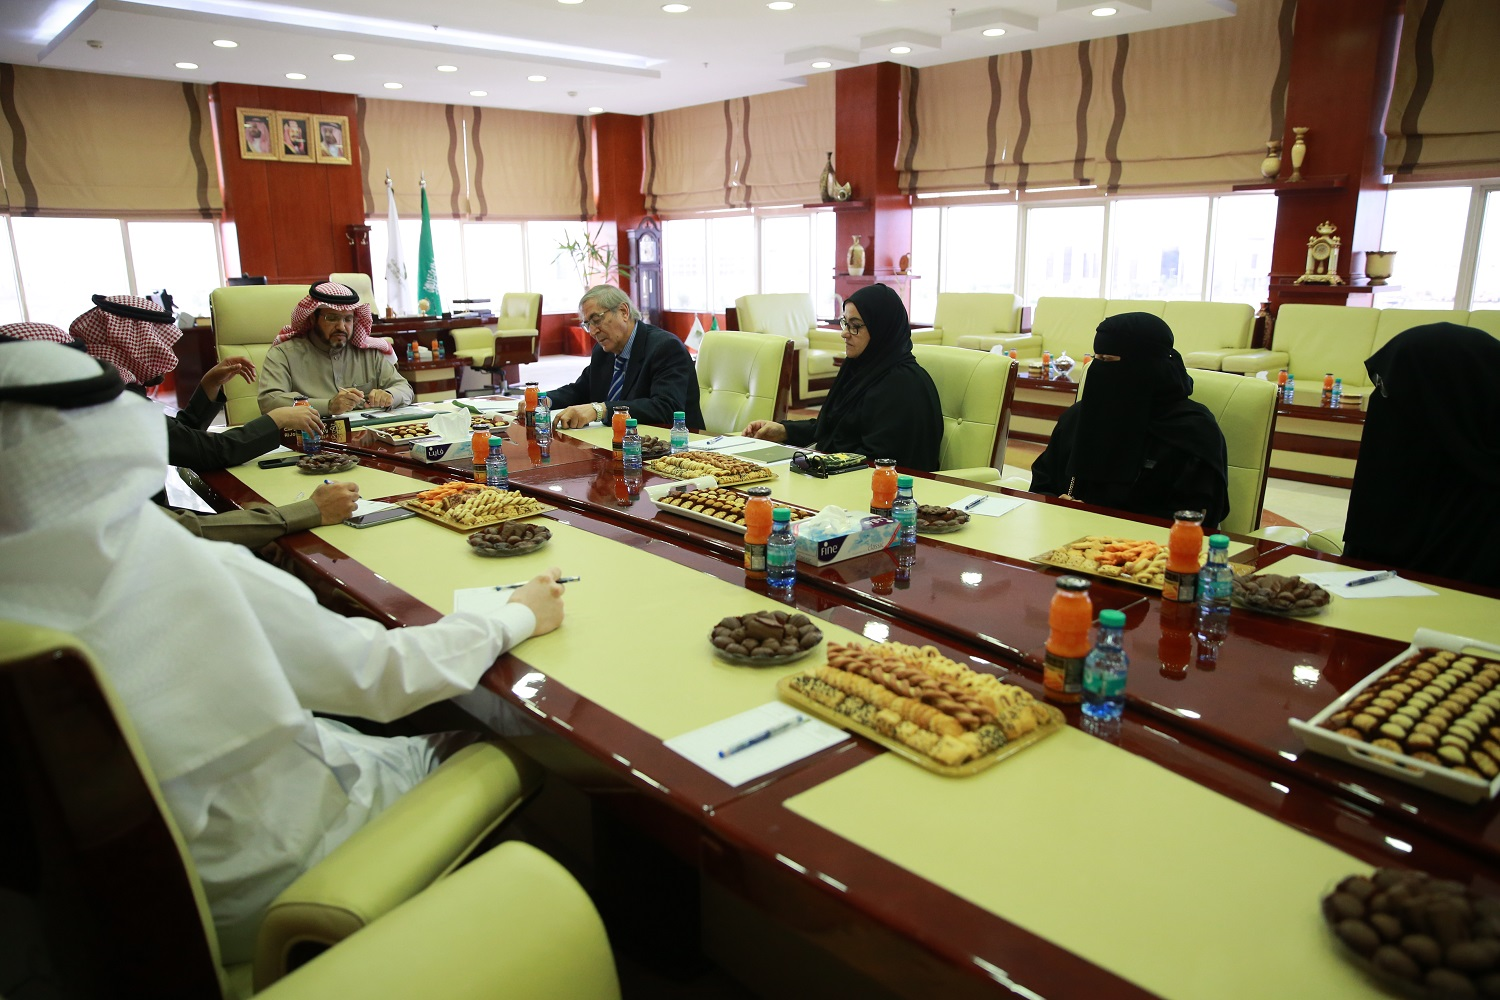 Advisors Team of the National Center for Academic Accreditation and Assessment Visits University to Verify Its Fulfillment of Requirements Qualifying for Institutional Accreditation